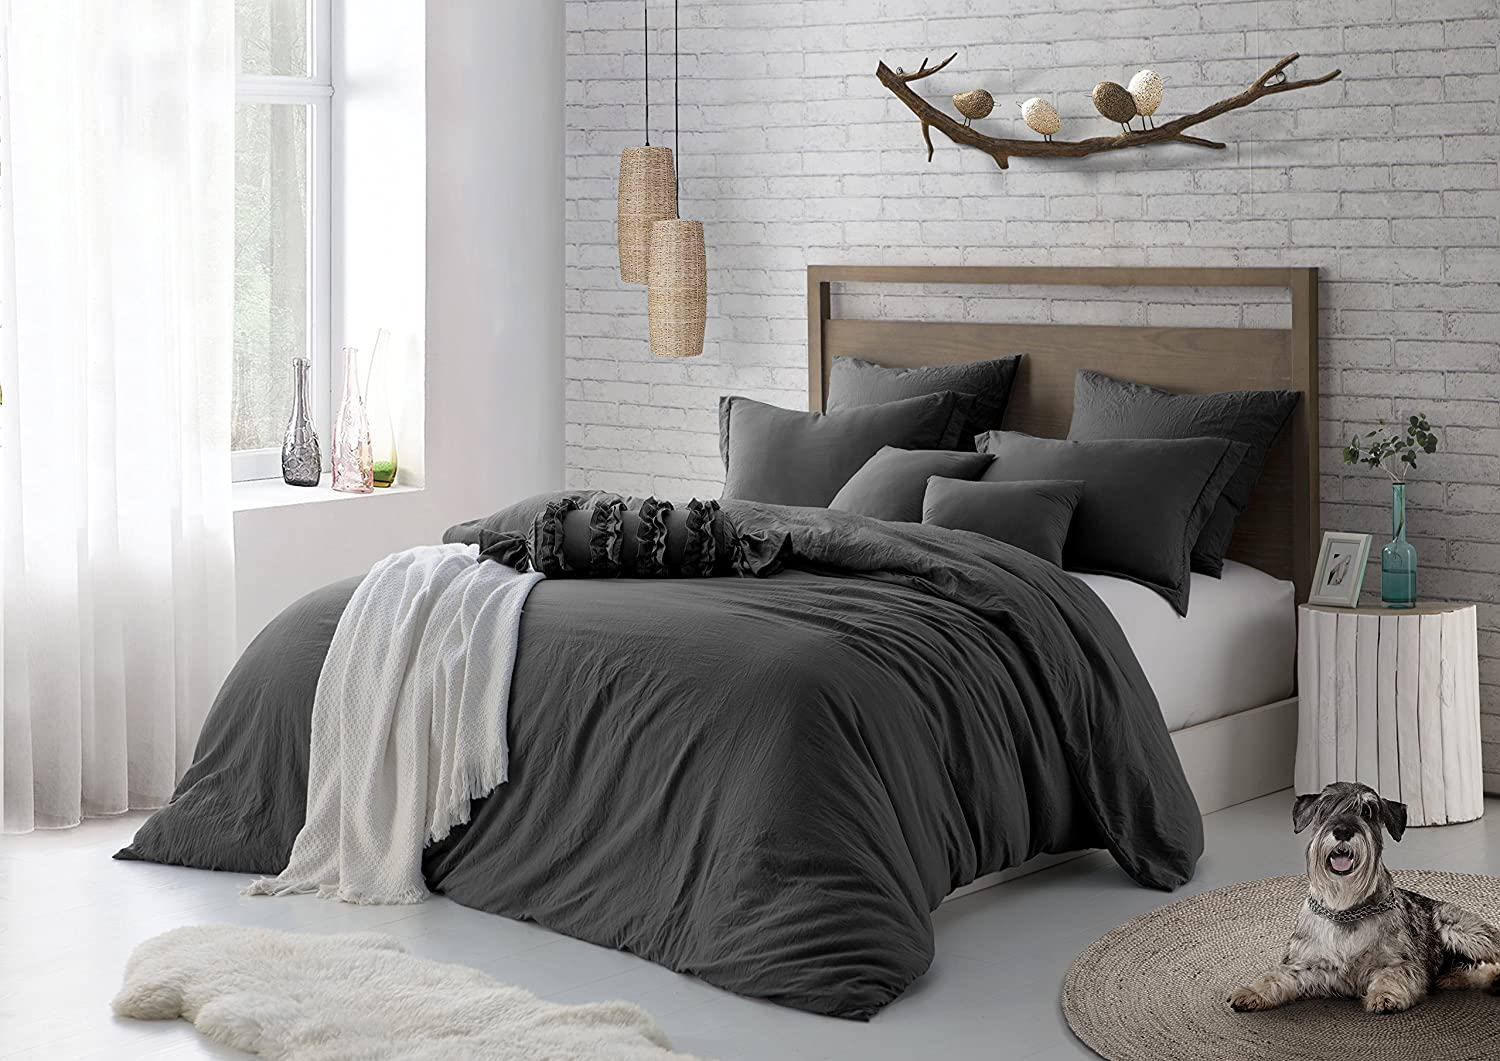 Premium Pre-washed Crinkle Microfiber Duvet Set Stylish Wrinkle Look